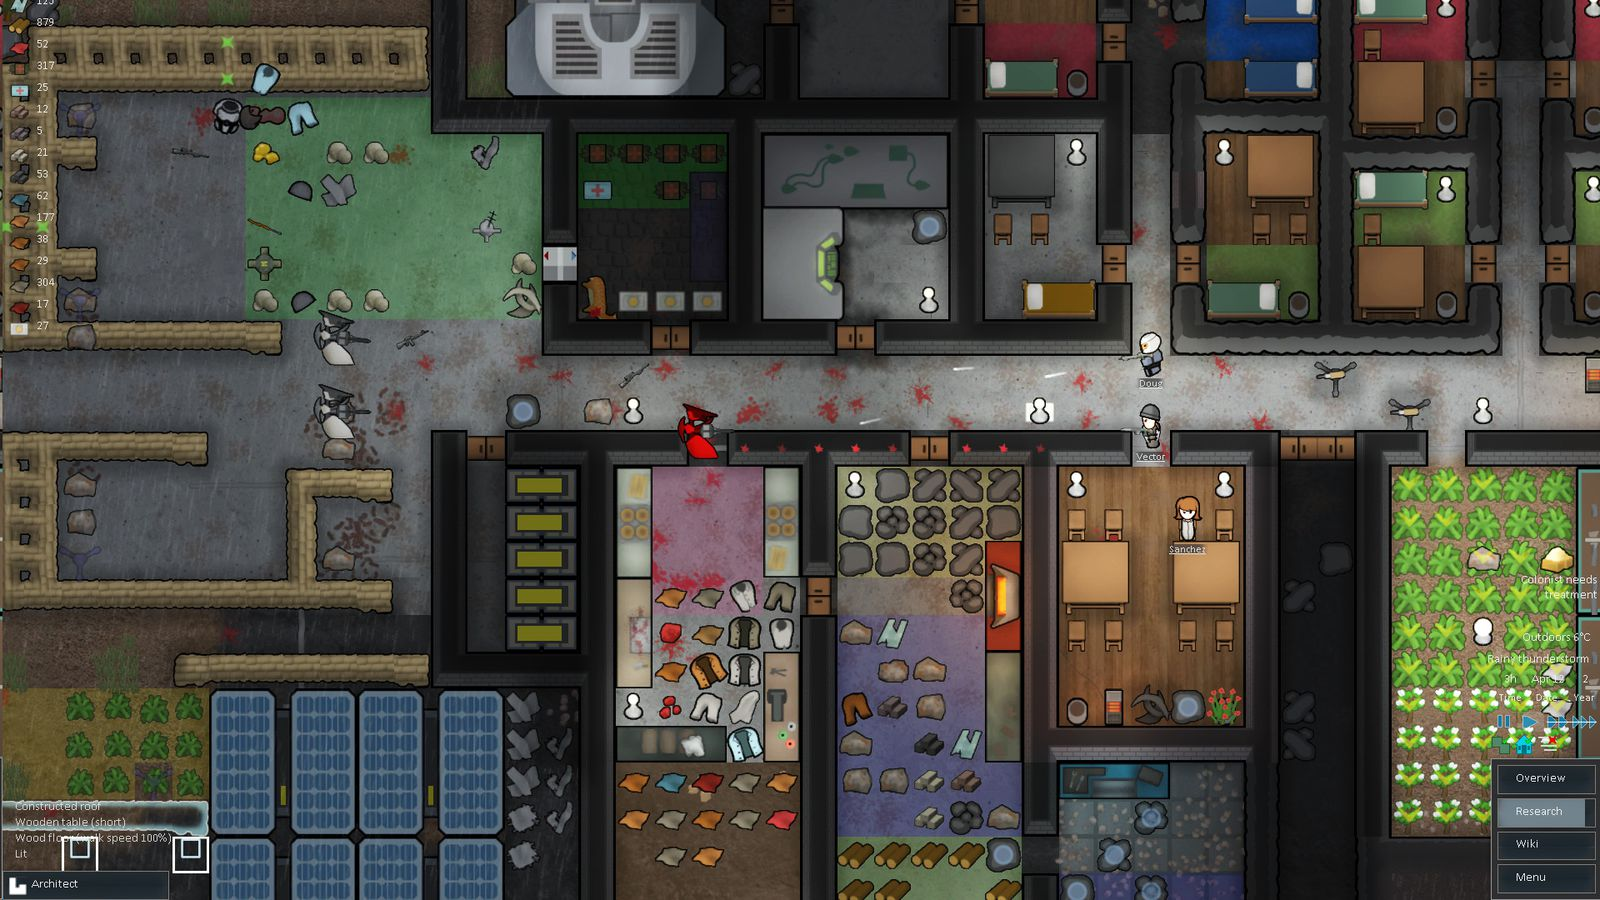 Rimworld S Sexuality Problem Leads To Witch Hunt Says